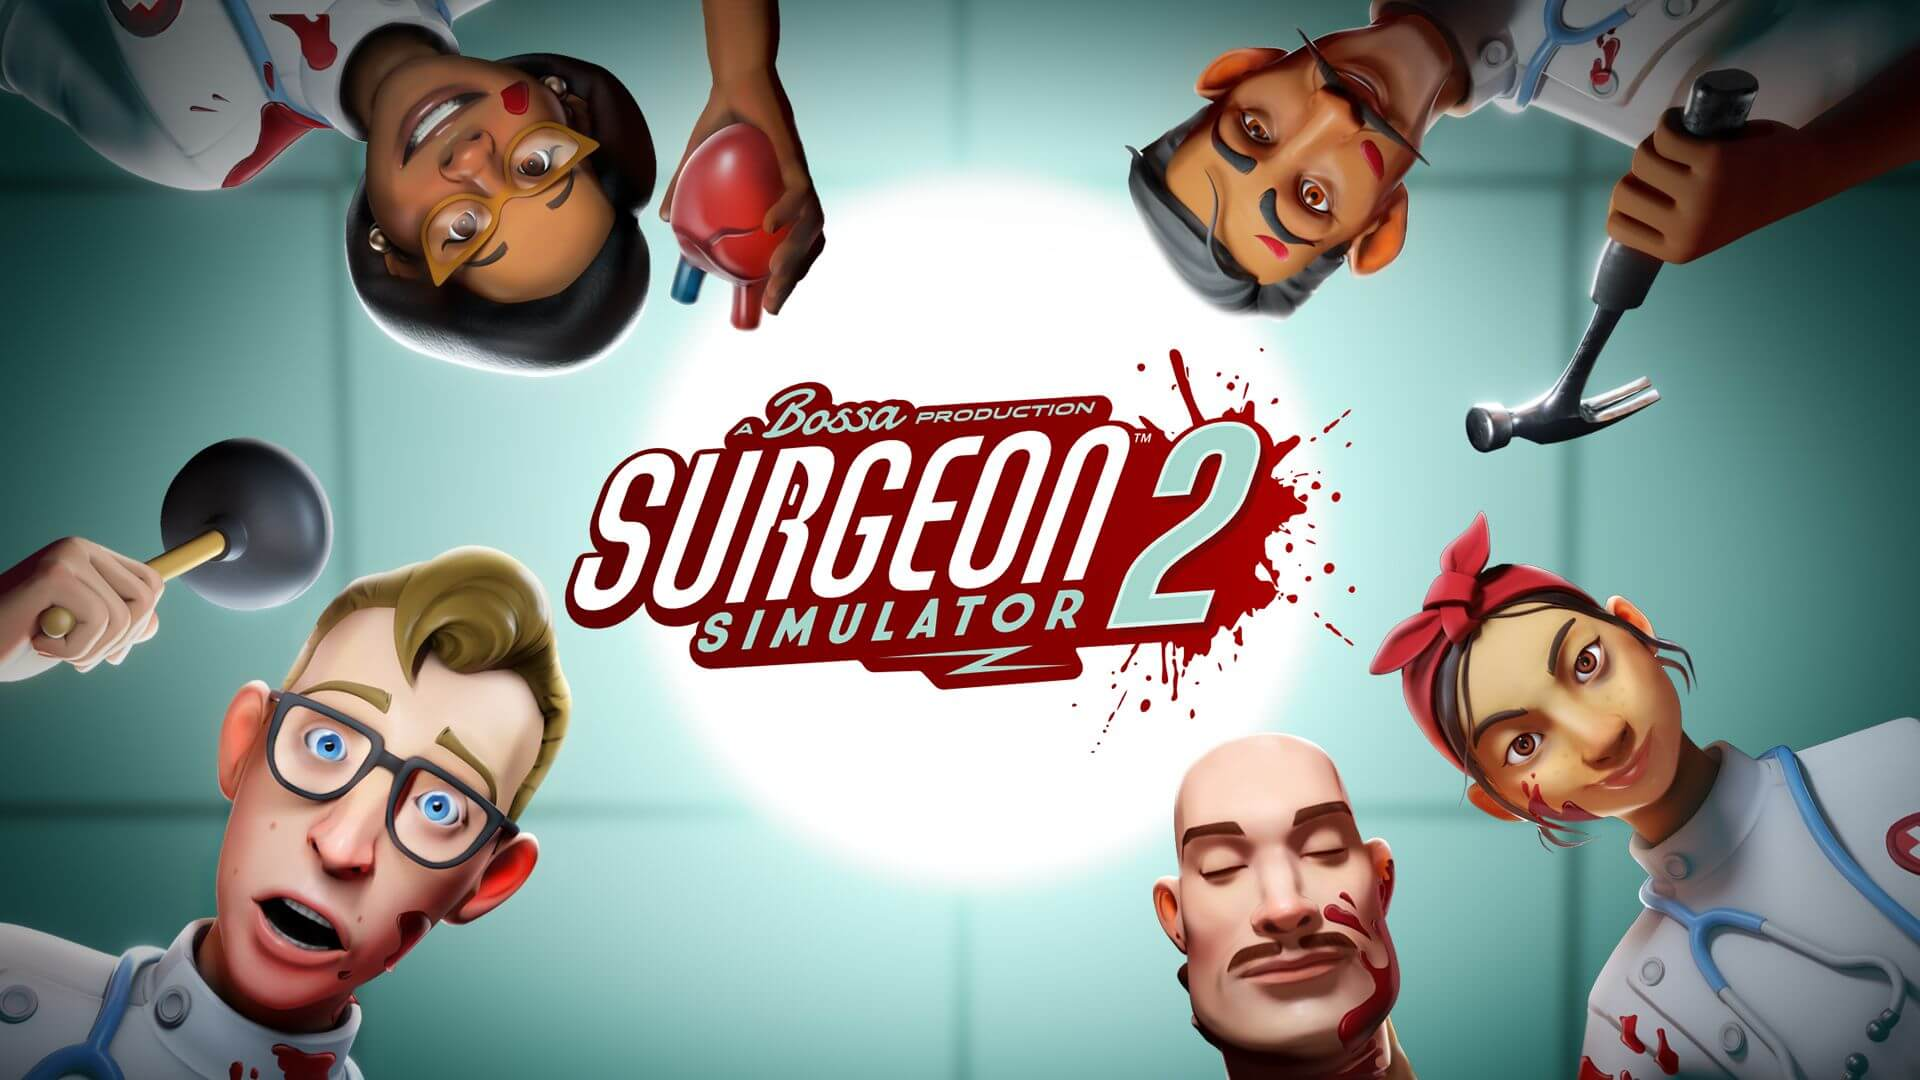 Surgeon Simulator 2 Free PC Download